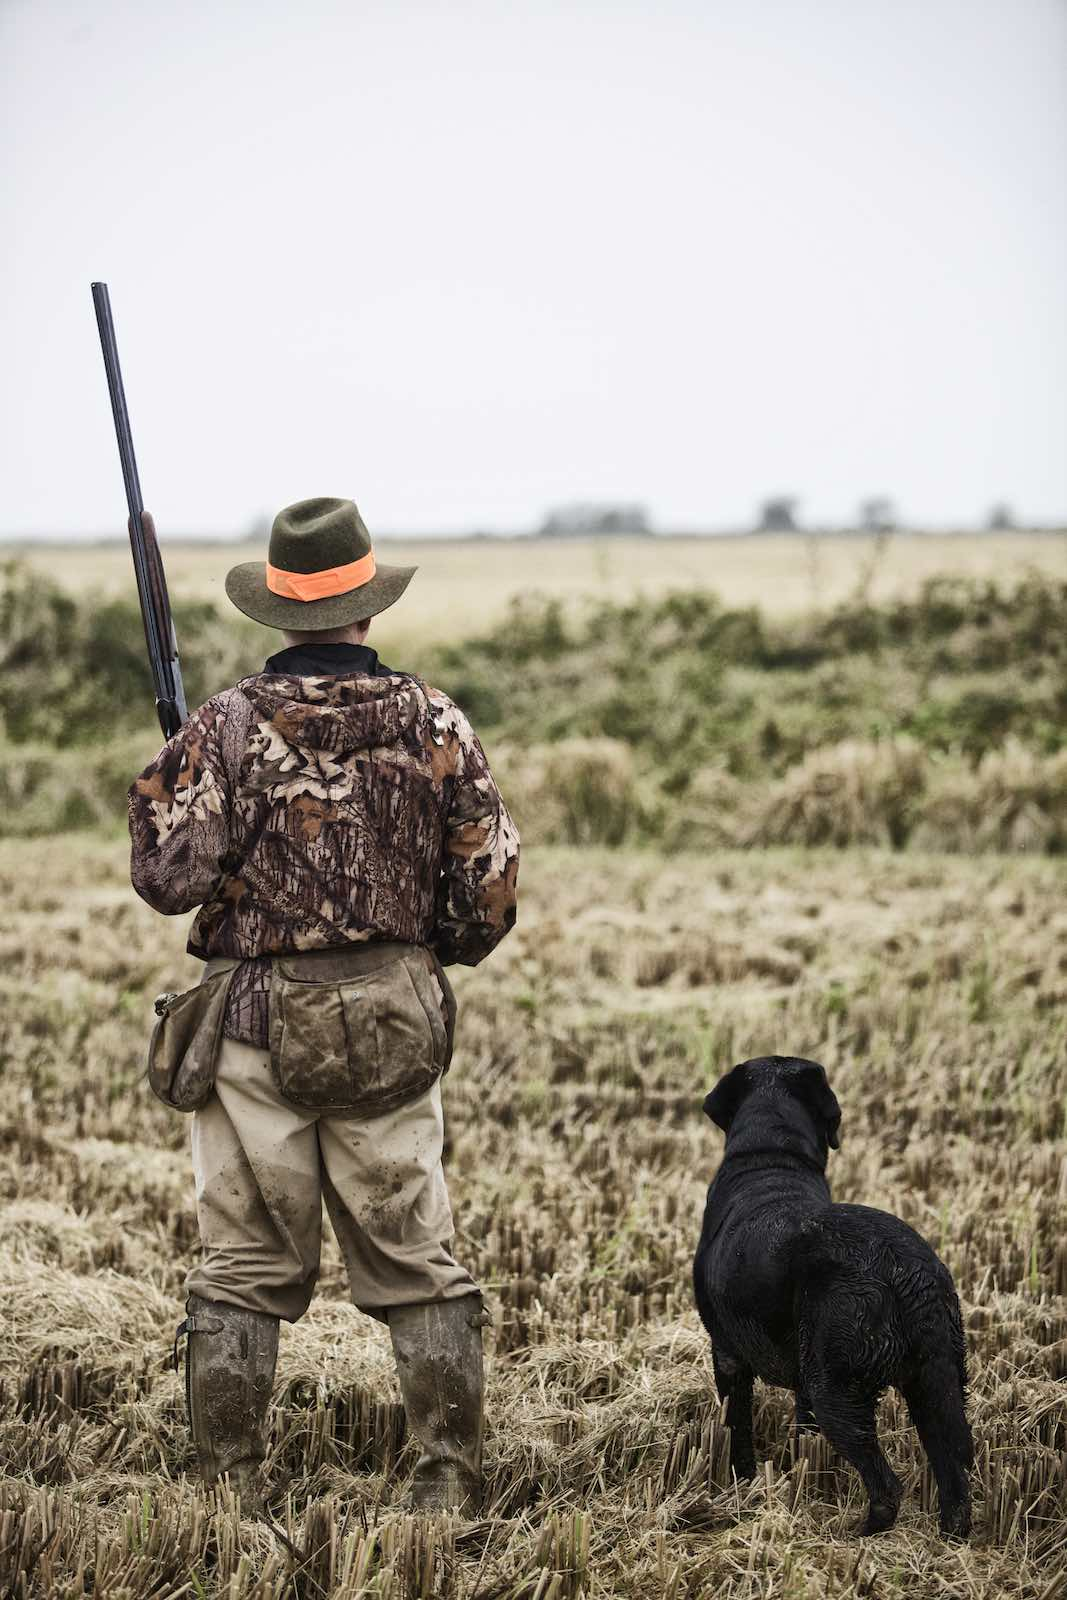 Jody Horton Photography - Hunter and dog looking out at field.